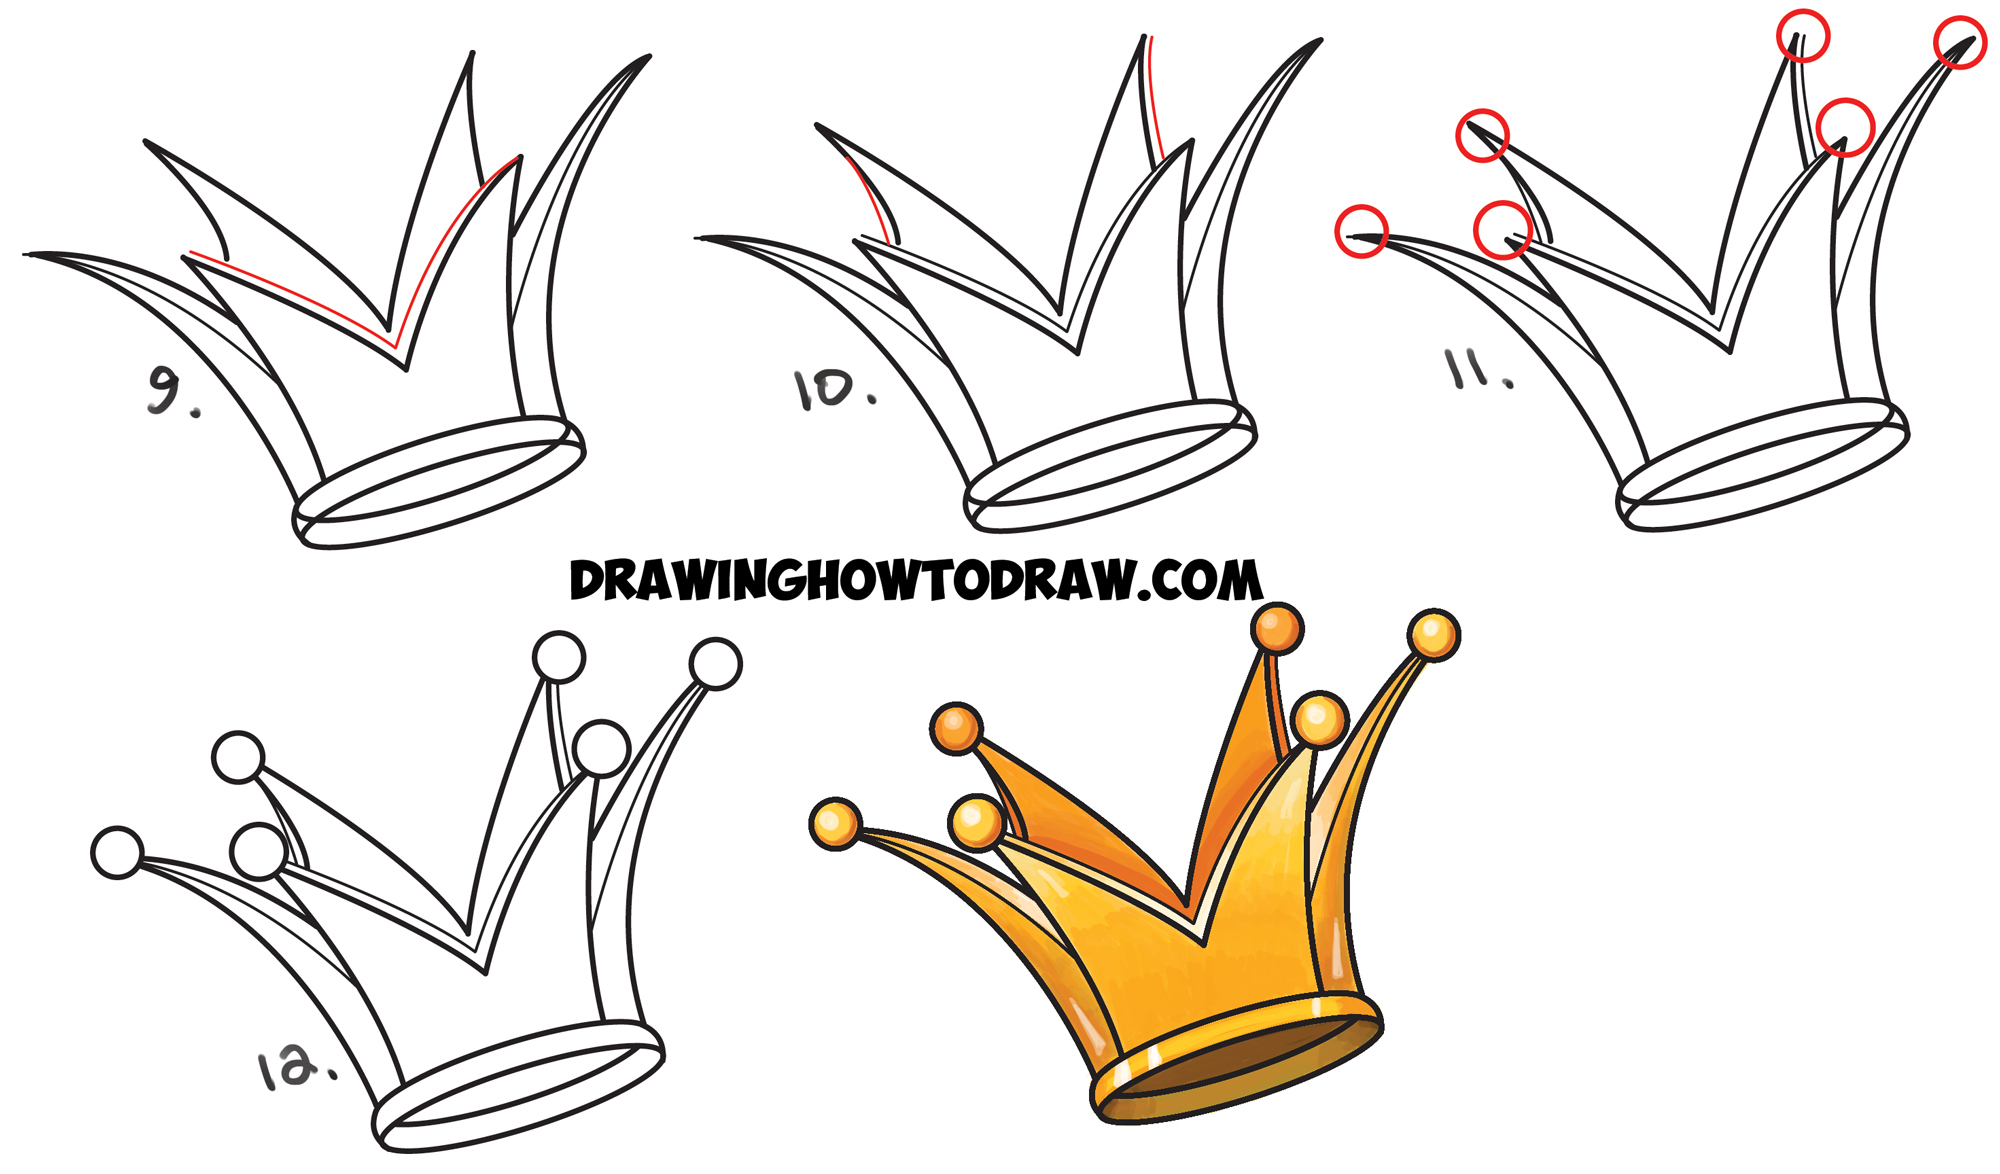 2000x1174 Graffiti Crown Drawing How To Draw A Crown